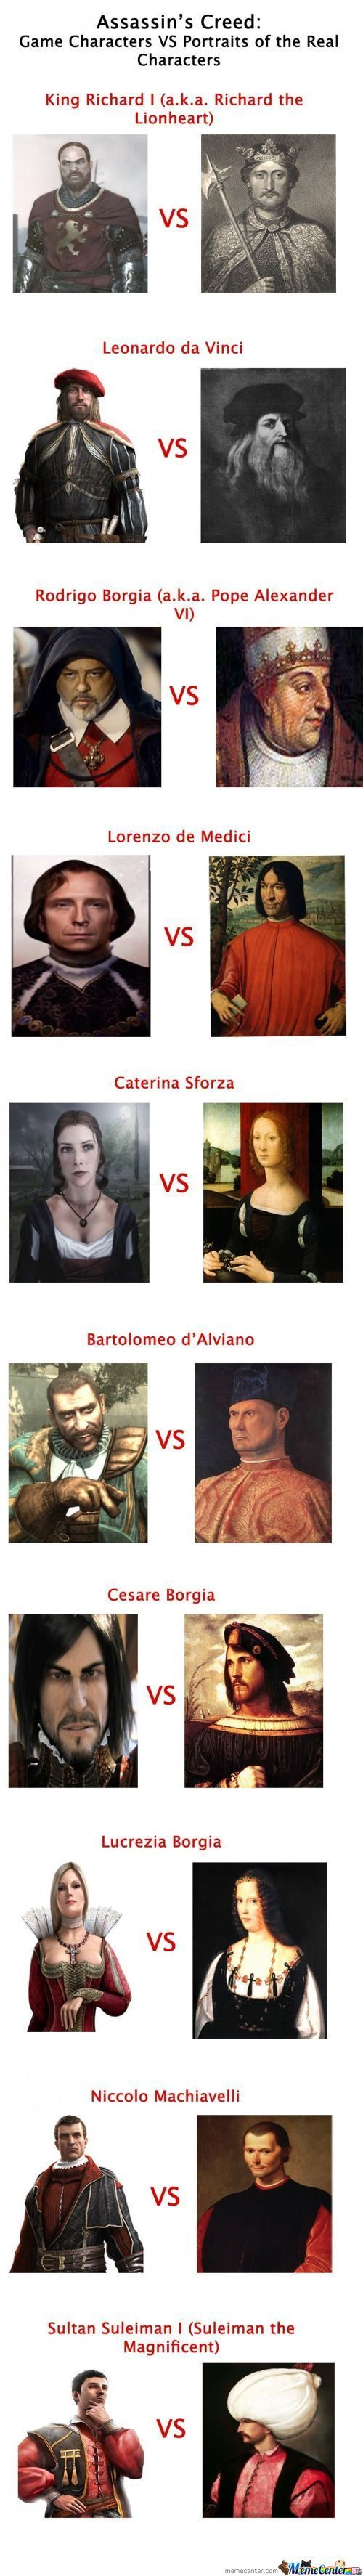 Assassin's Creed: Game Vs Real Characters